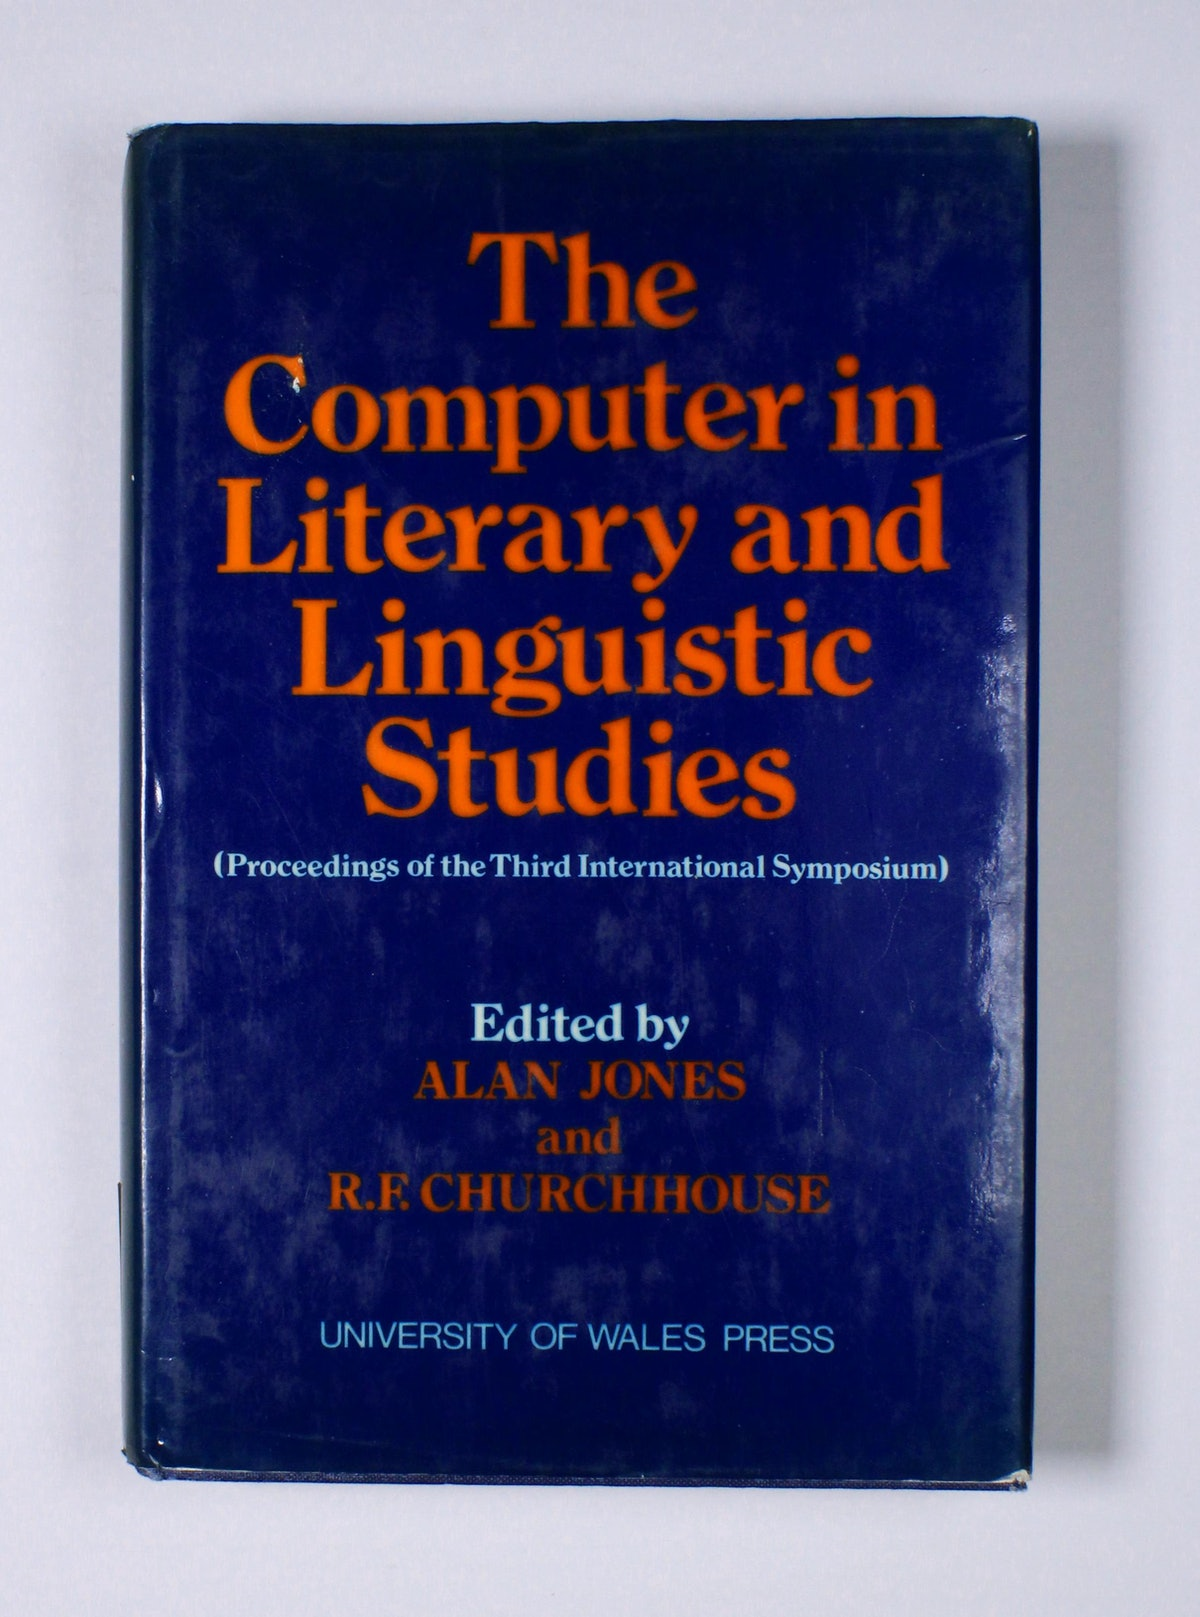 The Computer in Literary and Linguistic Studies